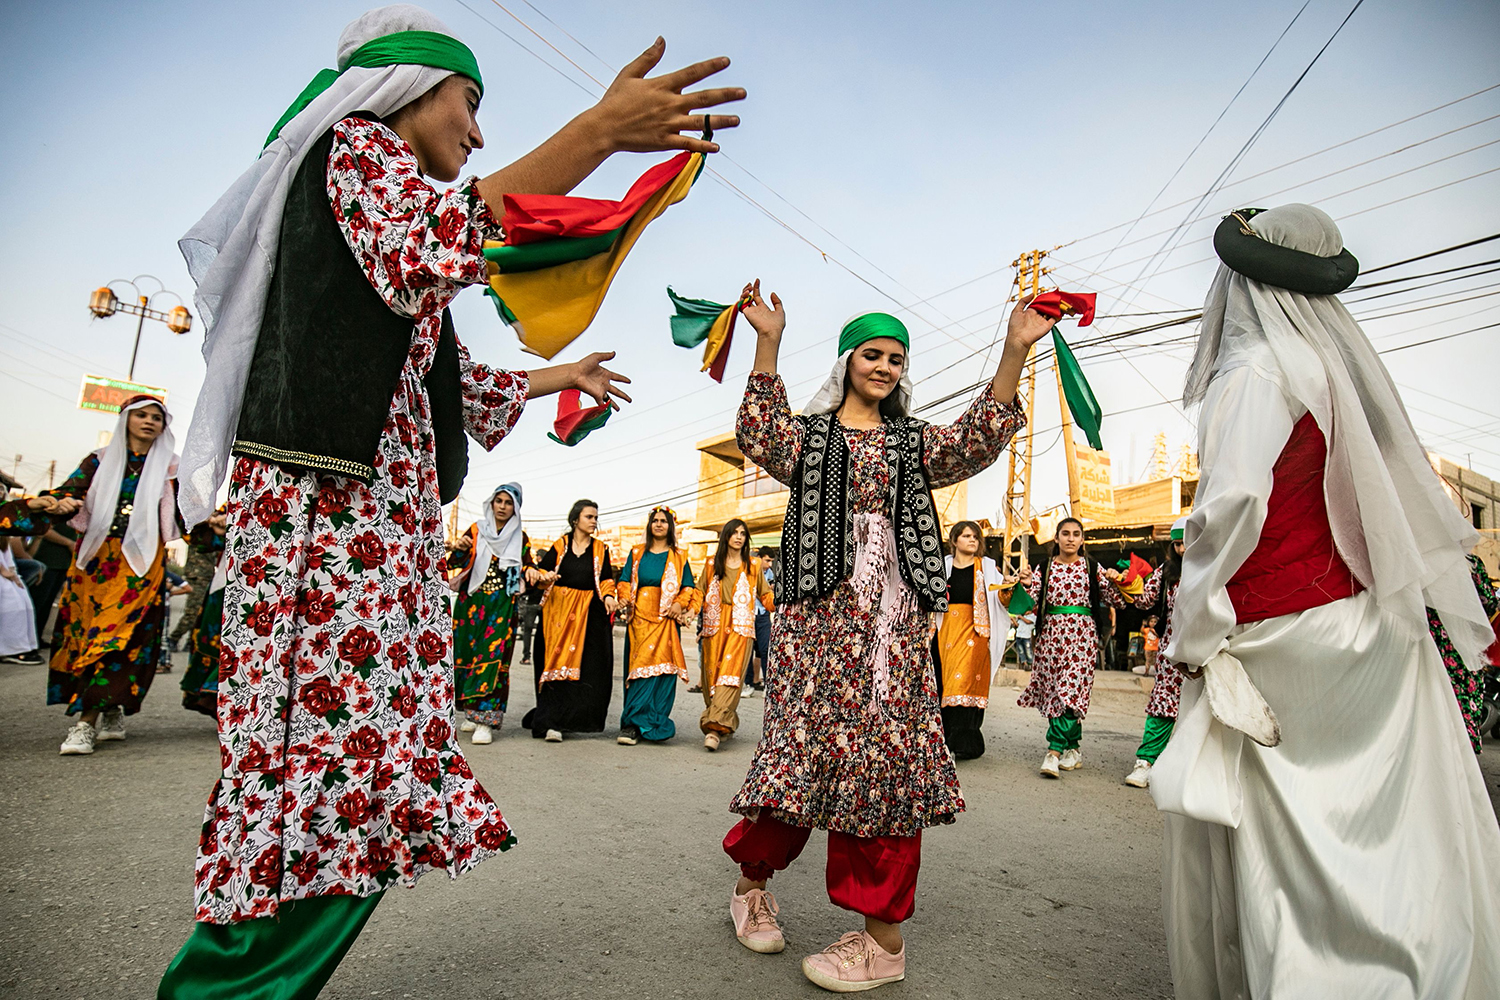 Syrian Kurds in traditional clothing dance the Dabke in a street festival in of Rumaylan in Syria's northeastern Hasakeh province on July 27. DELIL SOULEIMAN/AFP/Getty Images